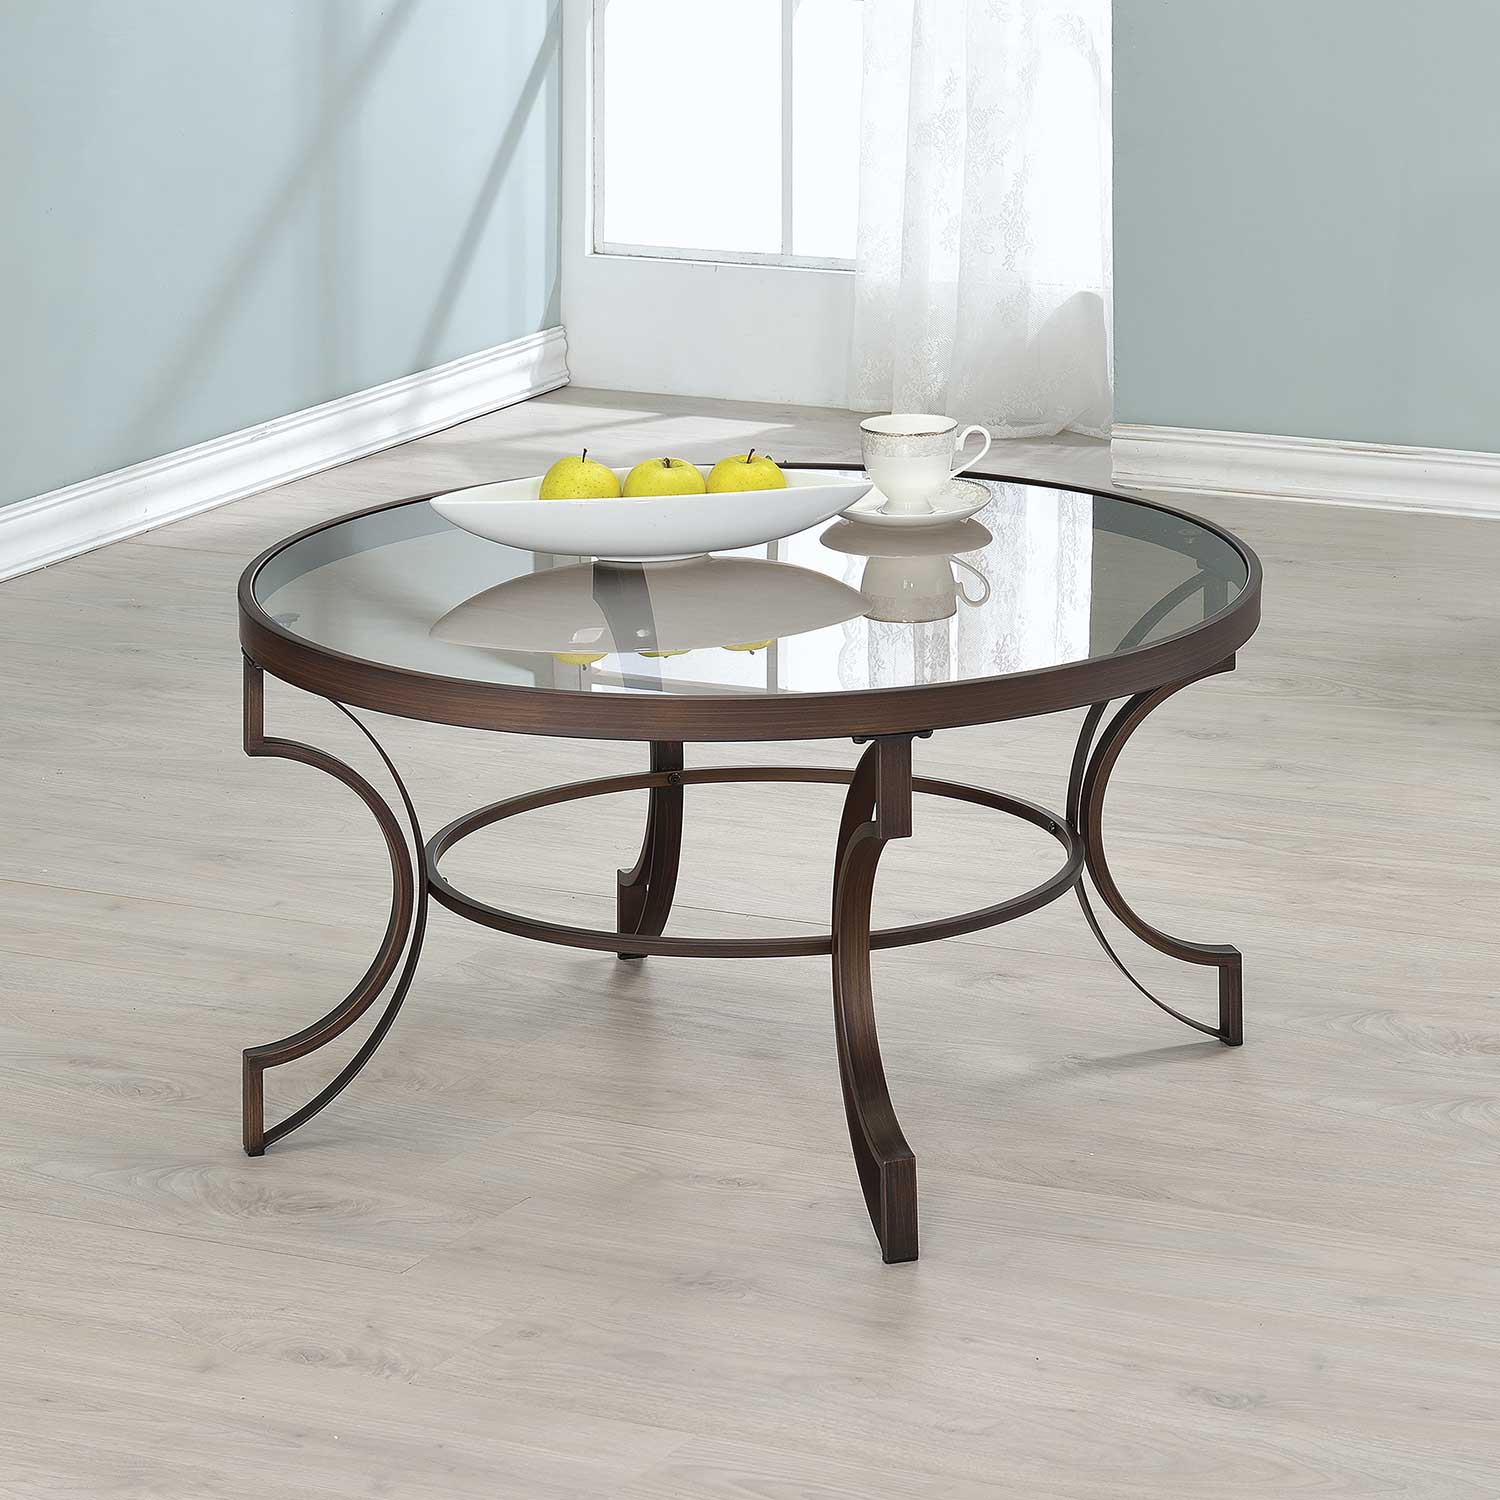 Coaster 704458 coffee table bronze tempered glass 704458 at coaster 704458 coffee table bronze tempered glass geotapseo Image collections